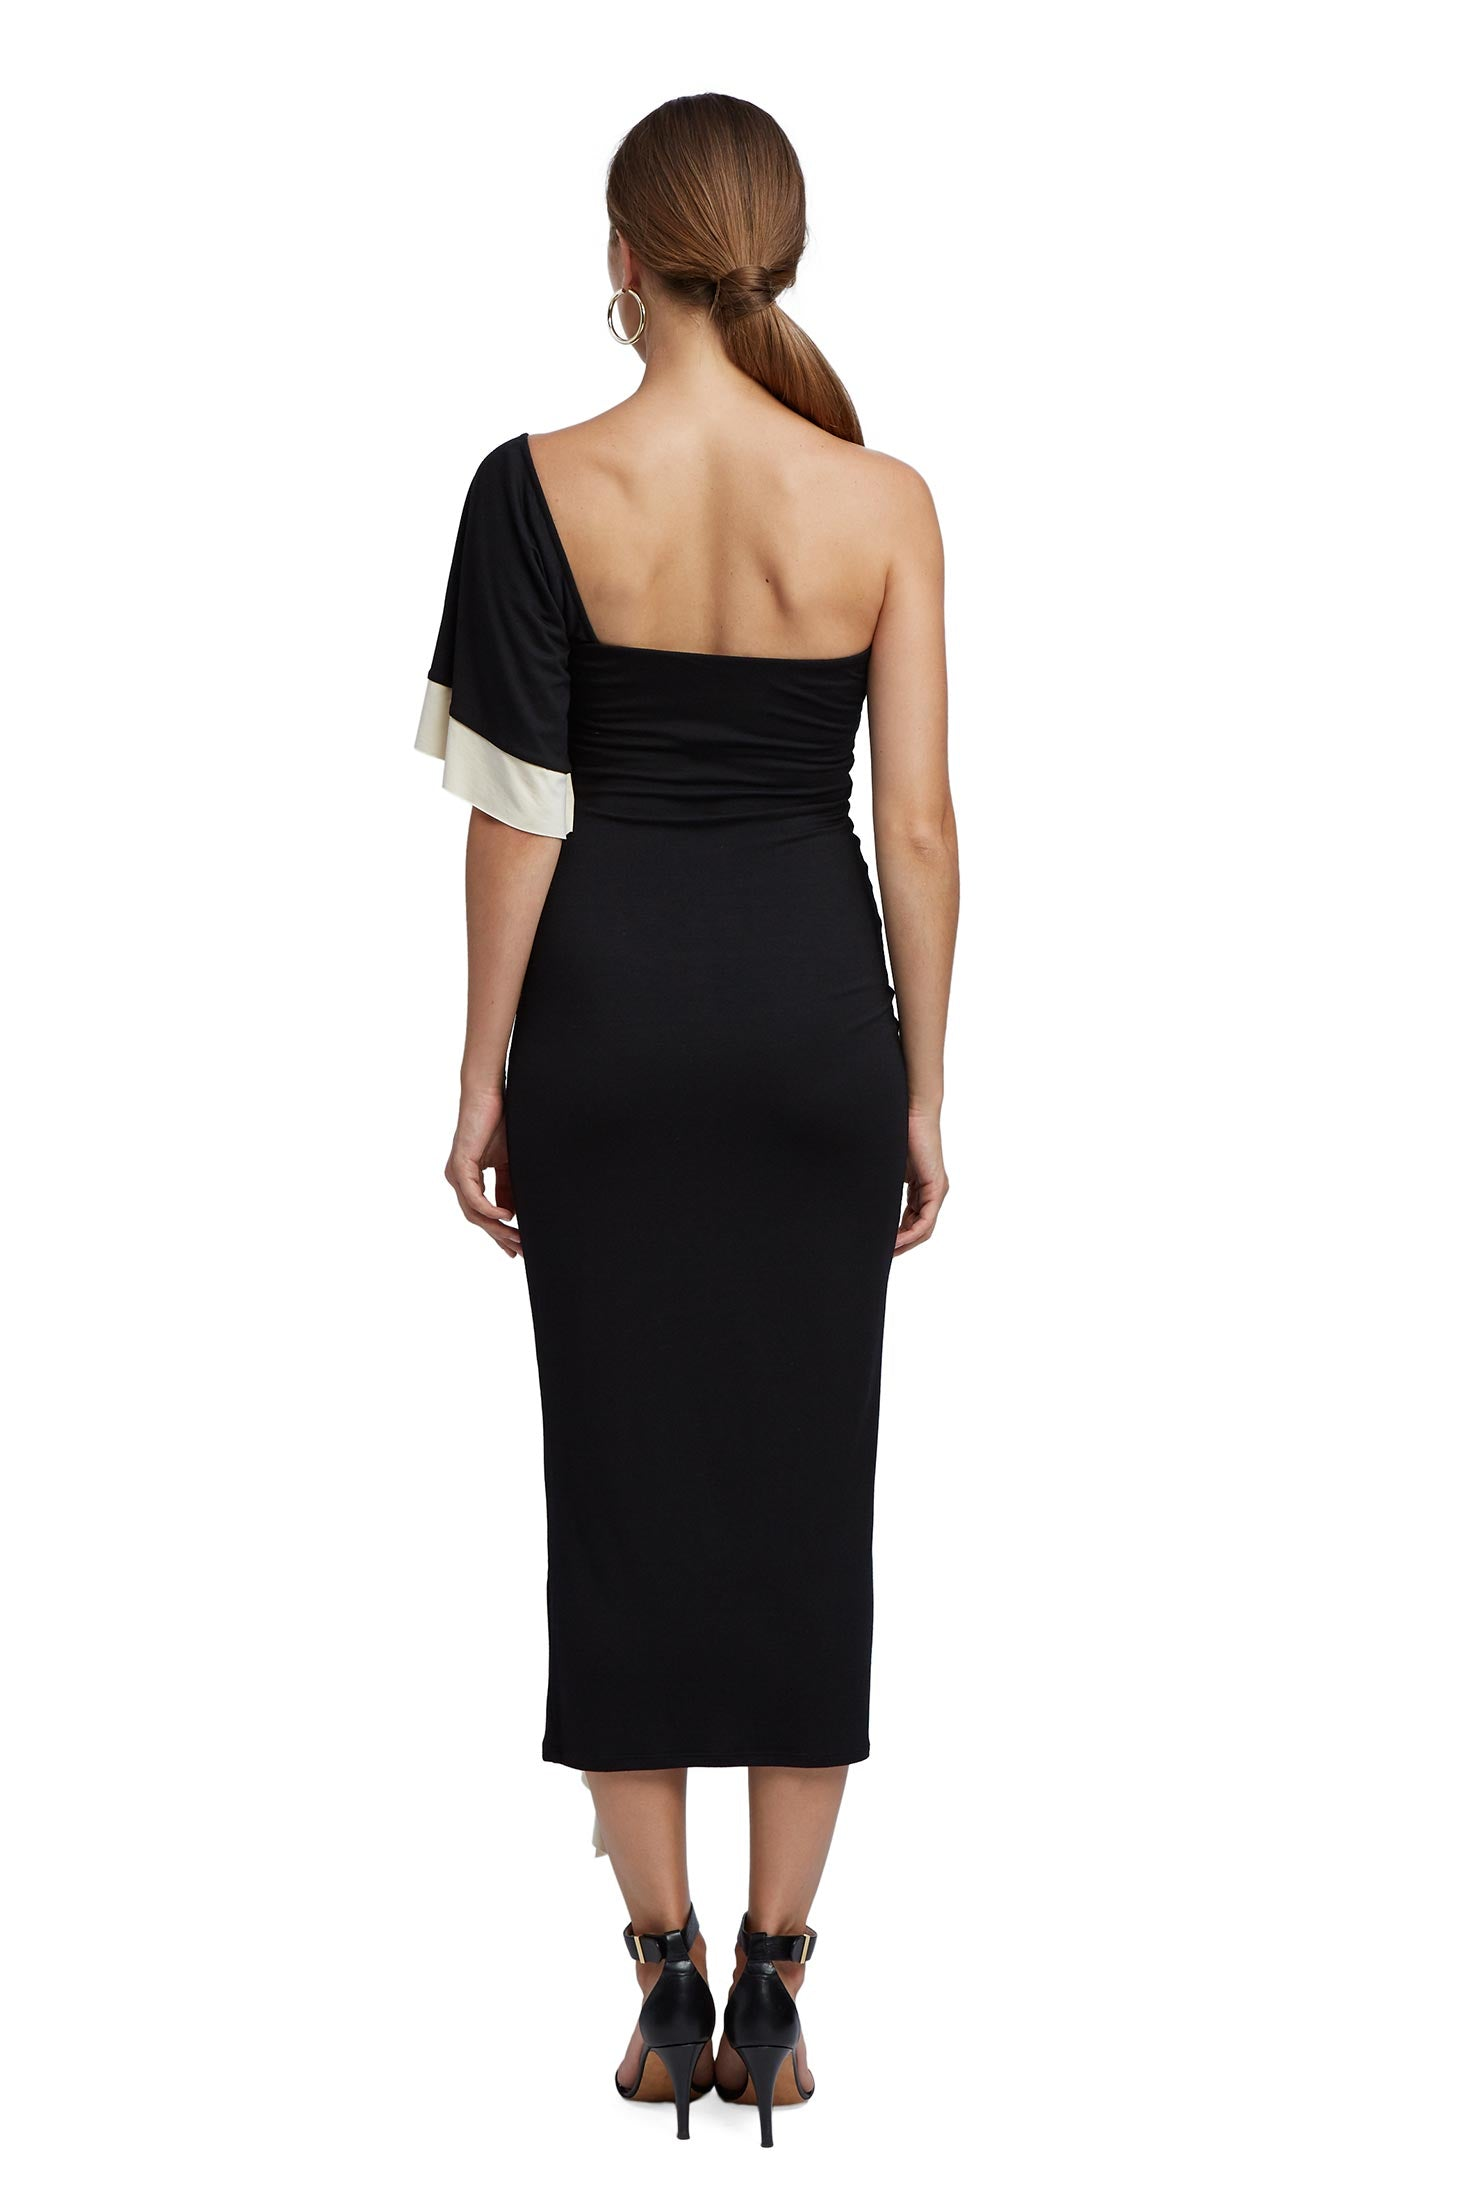 Veronica Dress - Black / Cream Colorblock